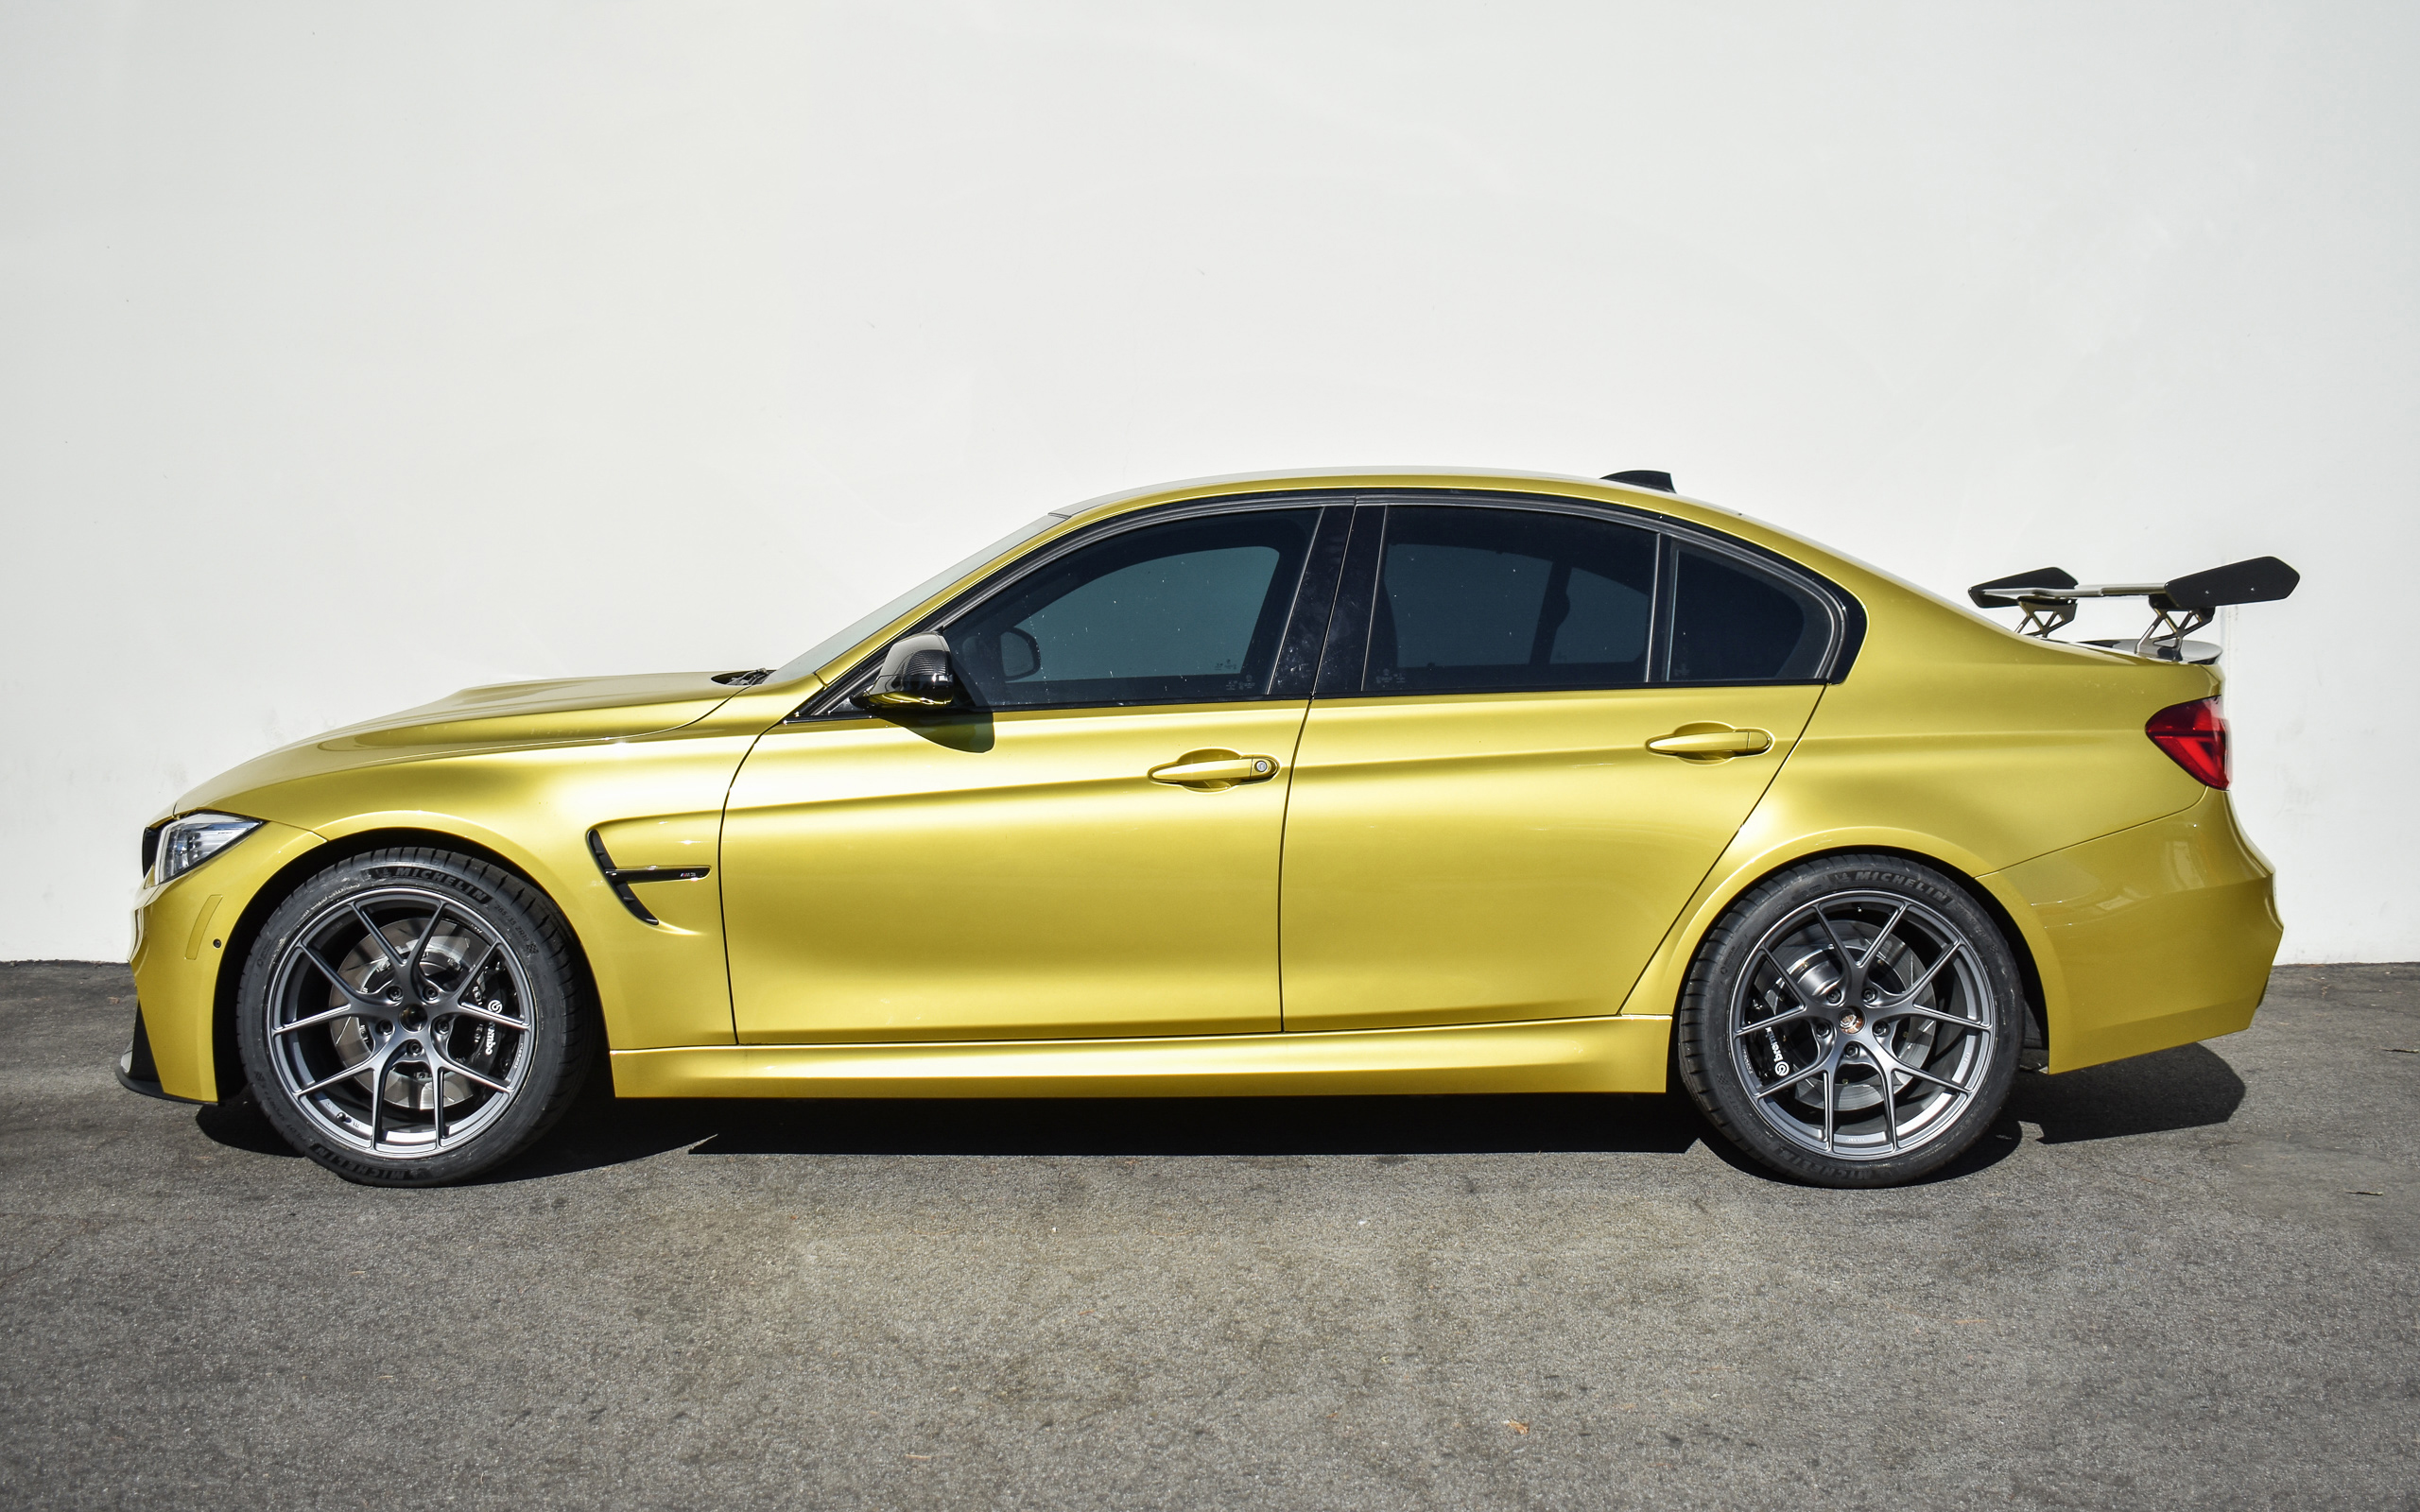 2017 Austin Yellow F80 M3 - 100% E85 Bootmod3 Tune + Pure Turbos Stage 2 Upgrade